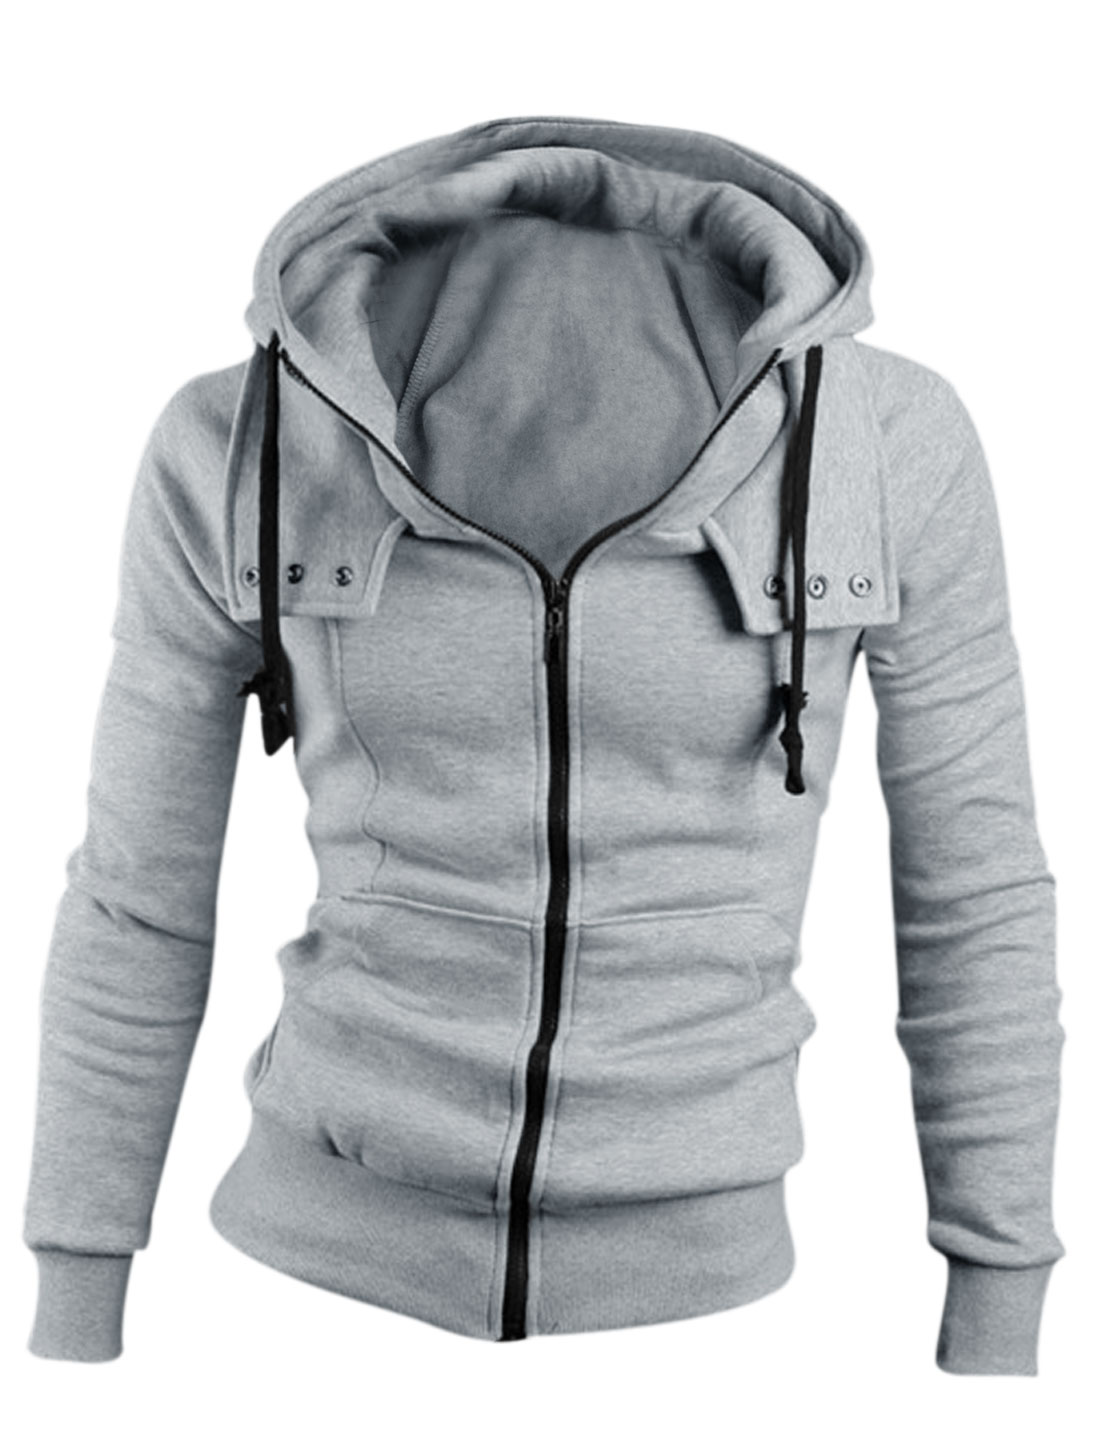 Men Zip Up Long Sleeve Front Pockets Drawstring Hoodie Light Gray M